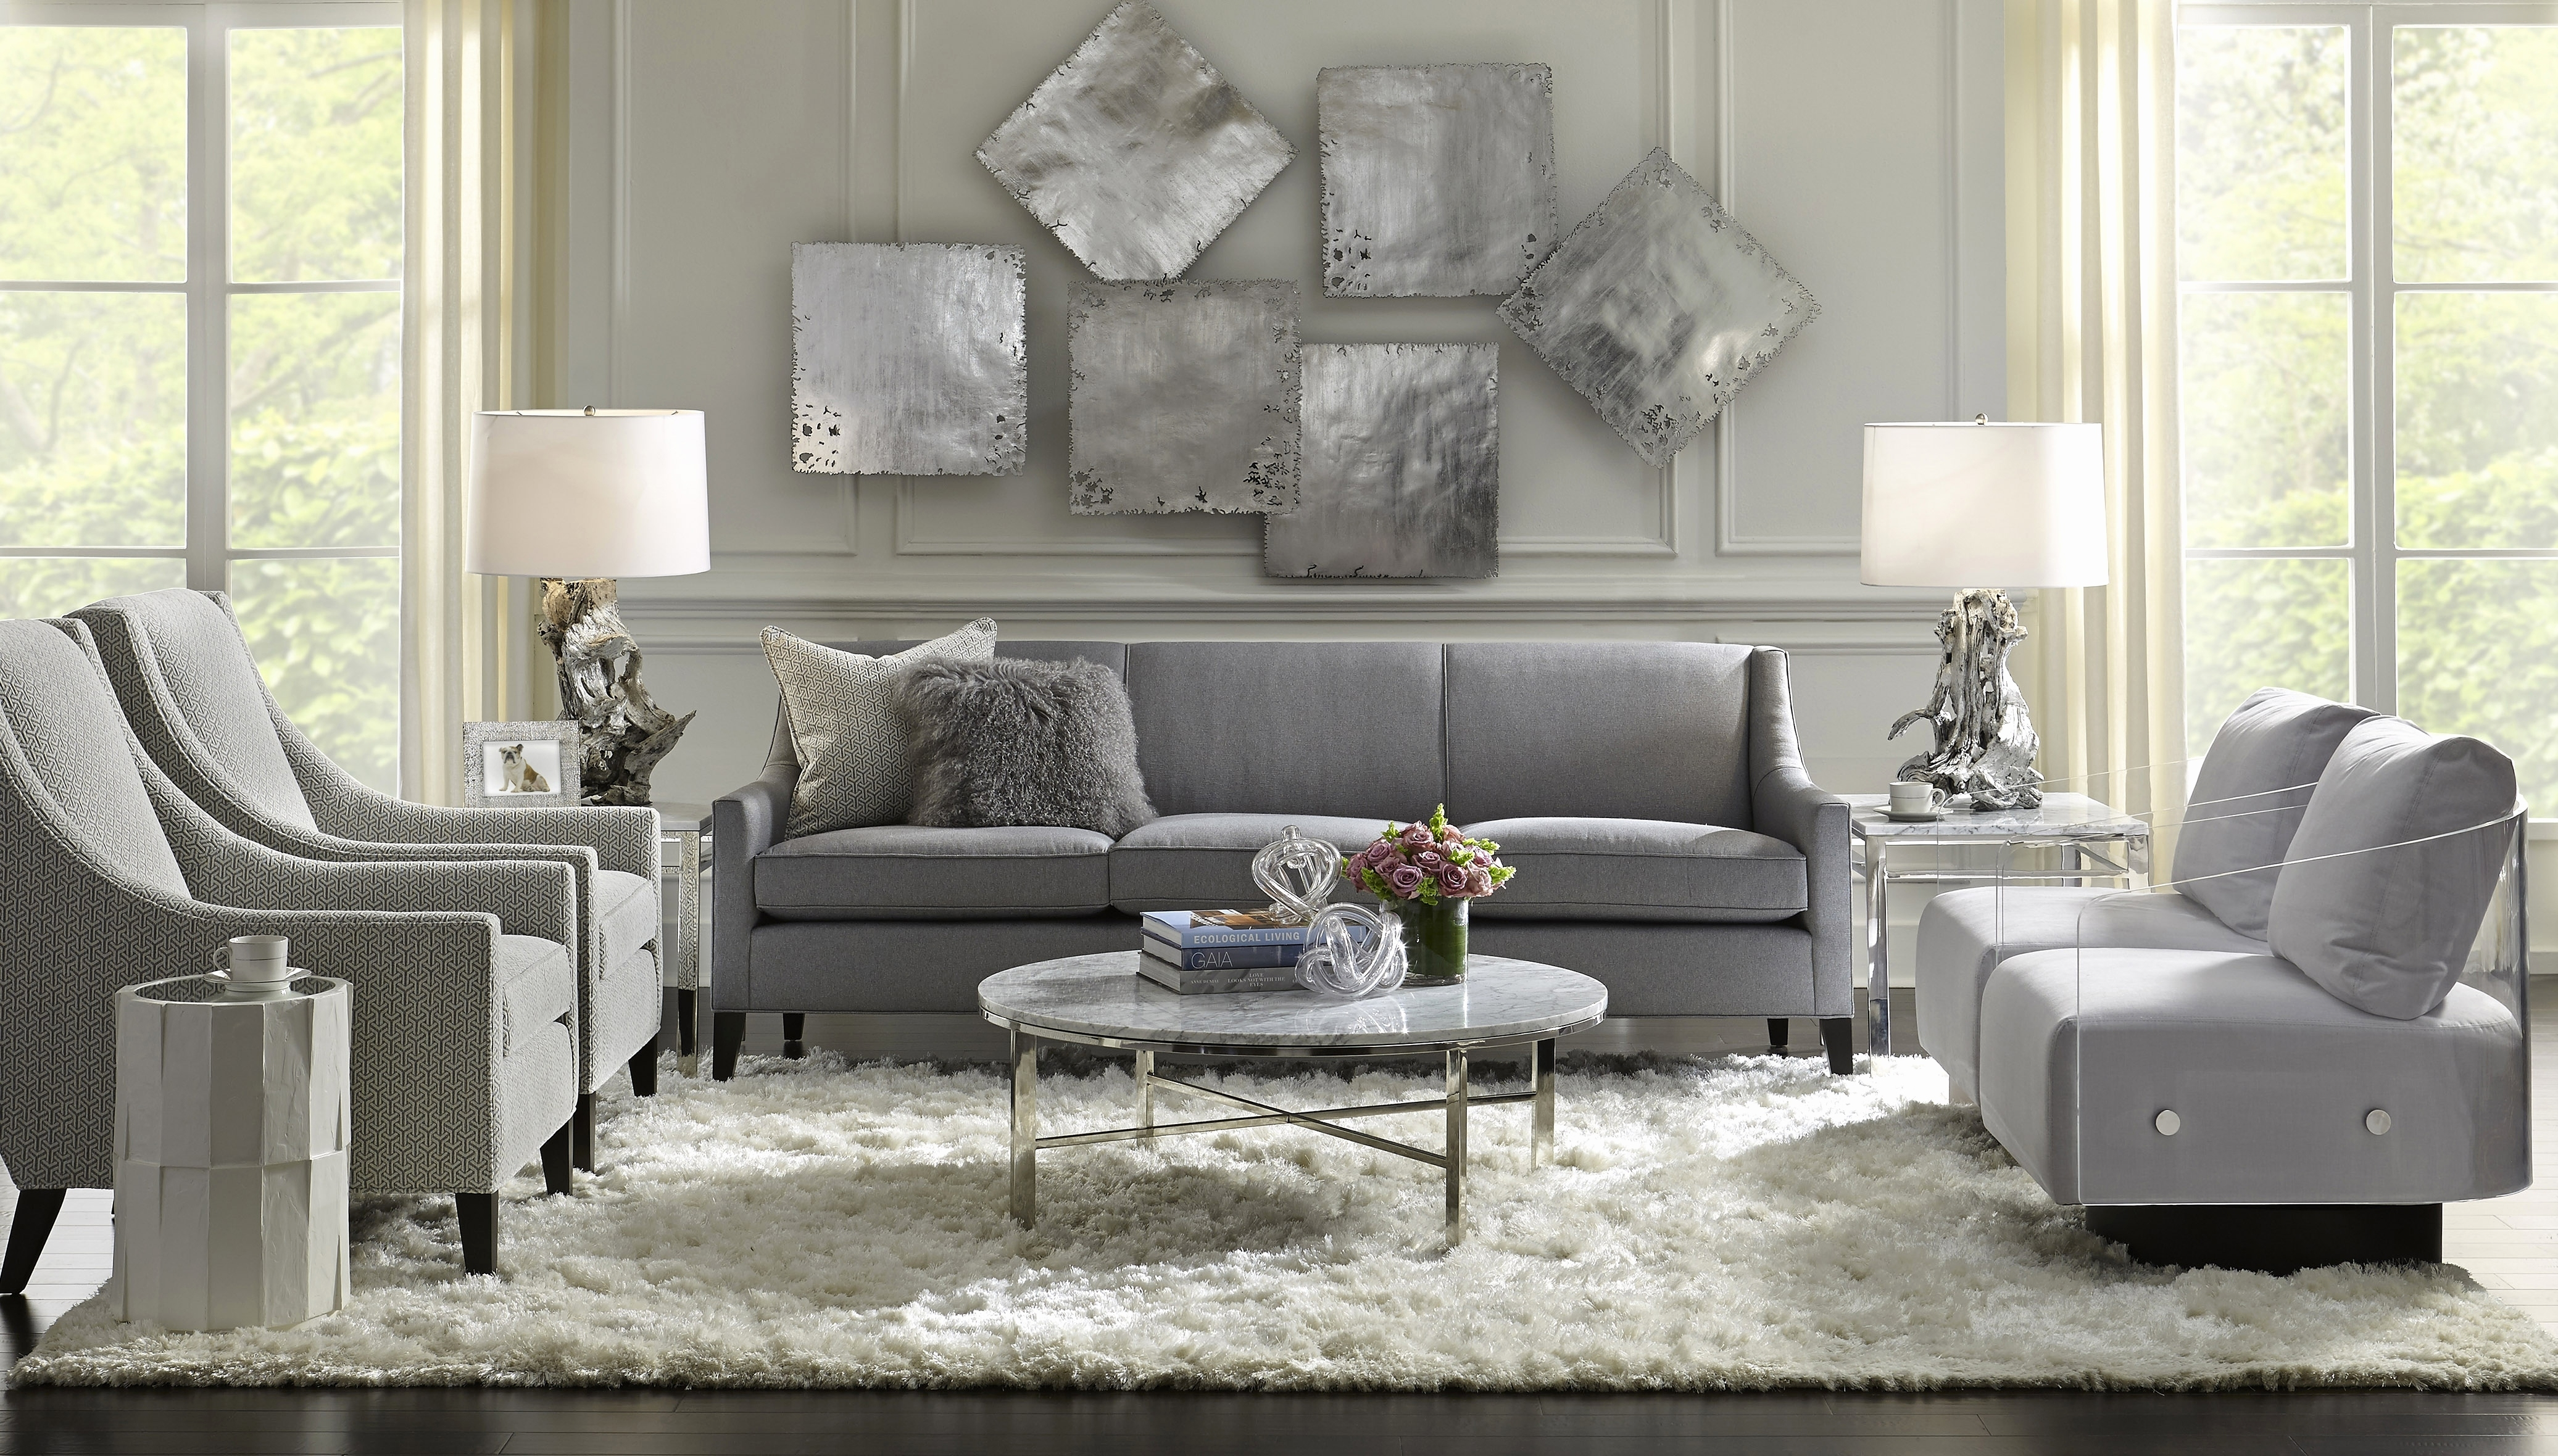 Luxury High End Sofa Beds 2018 – Couches And Sofas Ideas Within High End Sofas (View 10 of 10)